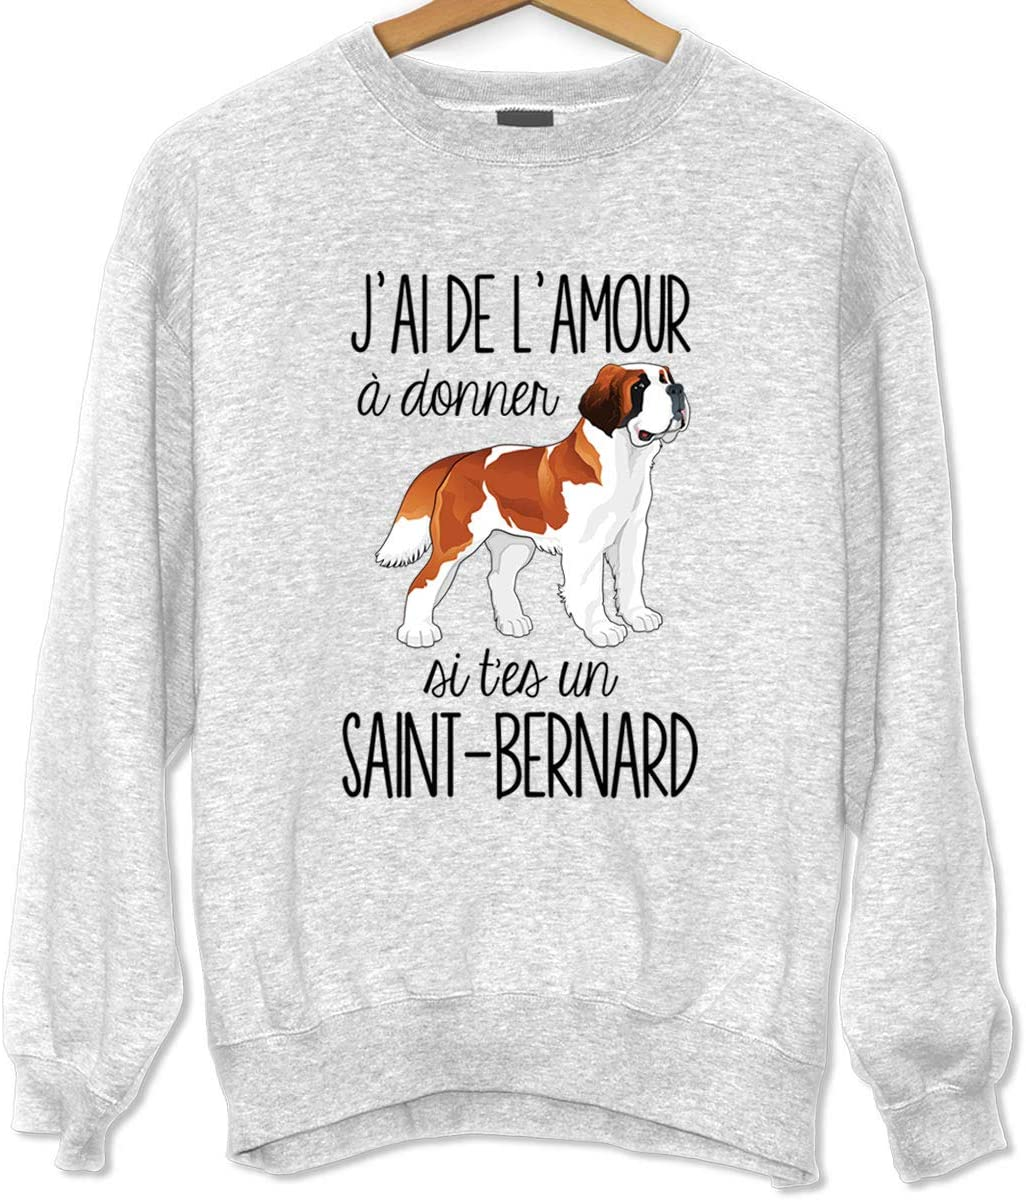 La Boite A Design Saint Bernard De L Amour A Donner Sweat Unisexe Humour Fun Drole Et Mignon Collection Animaux Et Races De Chiens Collection Animaux 3xl Amazon Fr Sports Et